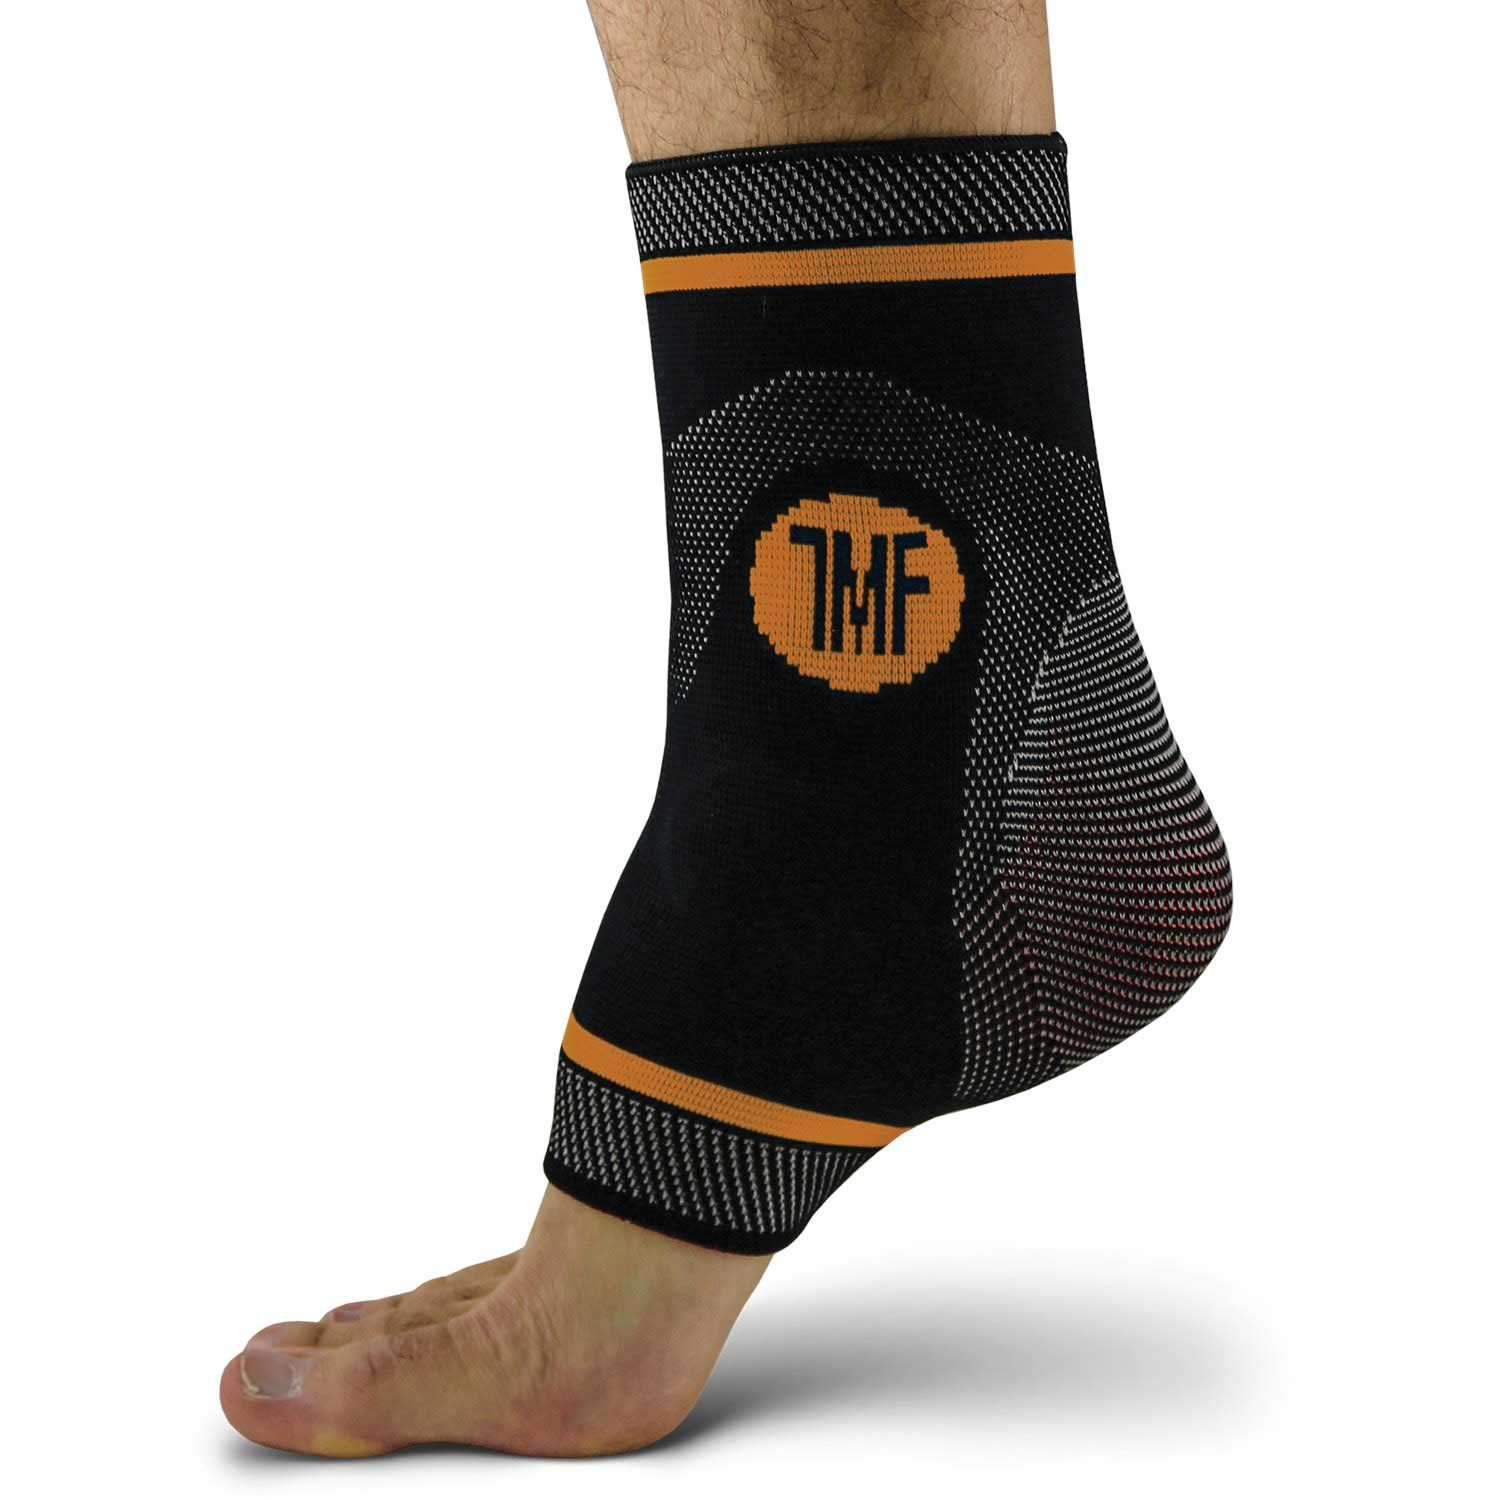 Ideal Ankle Compression Sleeve for Ankle Support /& Achilles Tendon Support Ankle Braces Plantar Fasciitis Socks